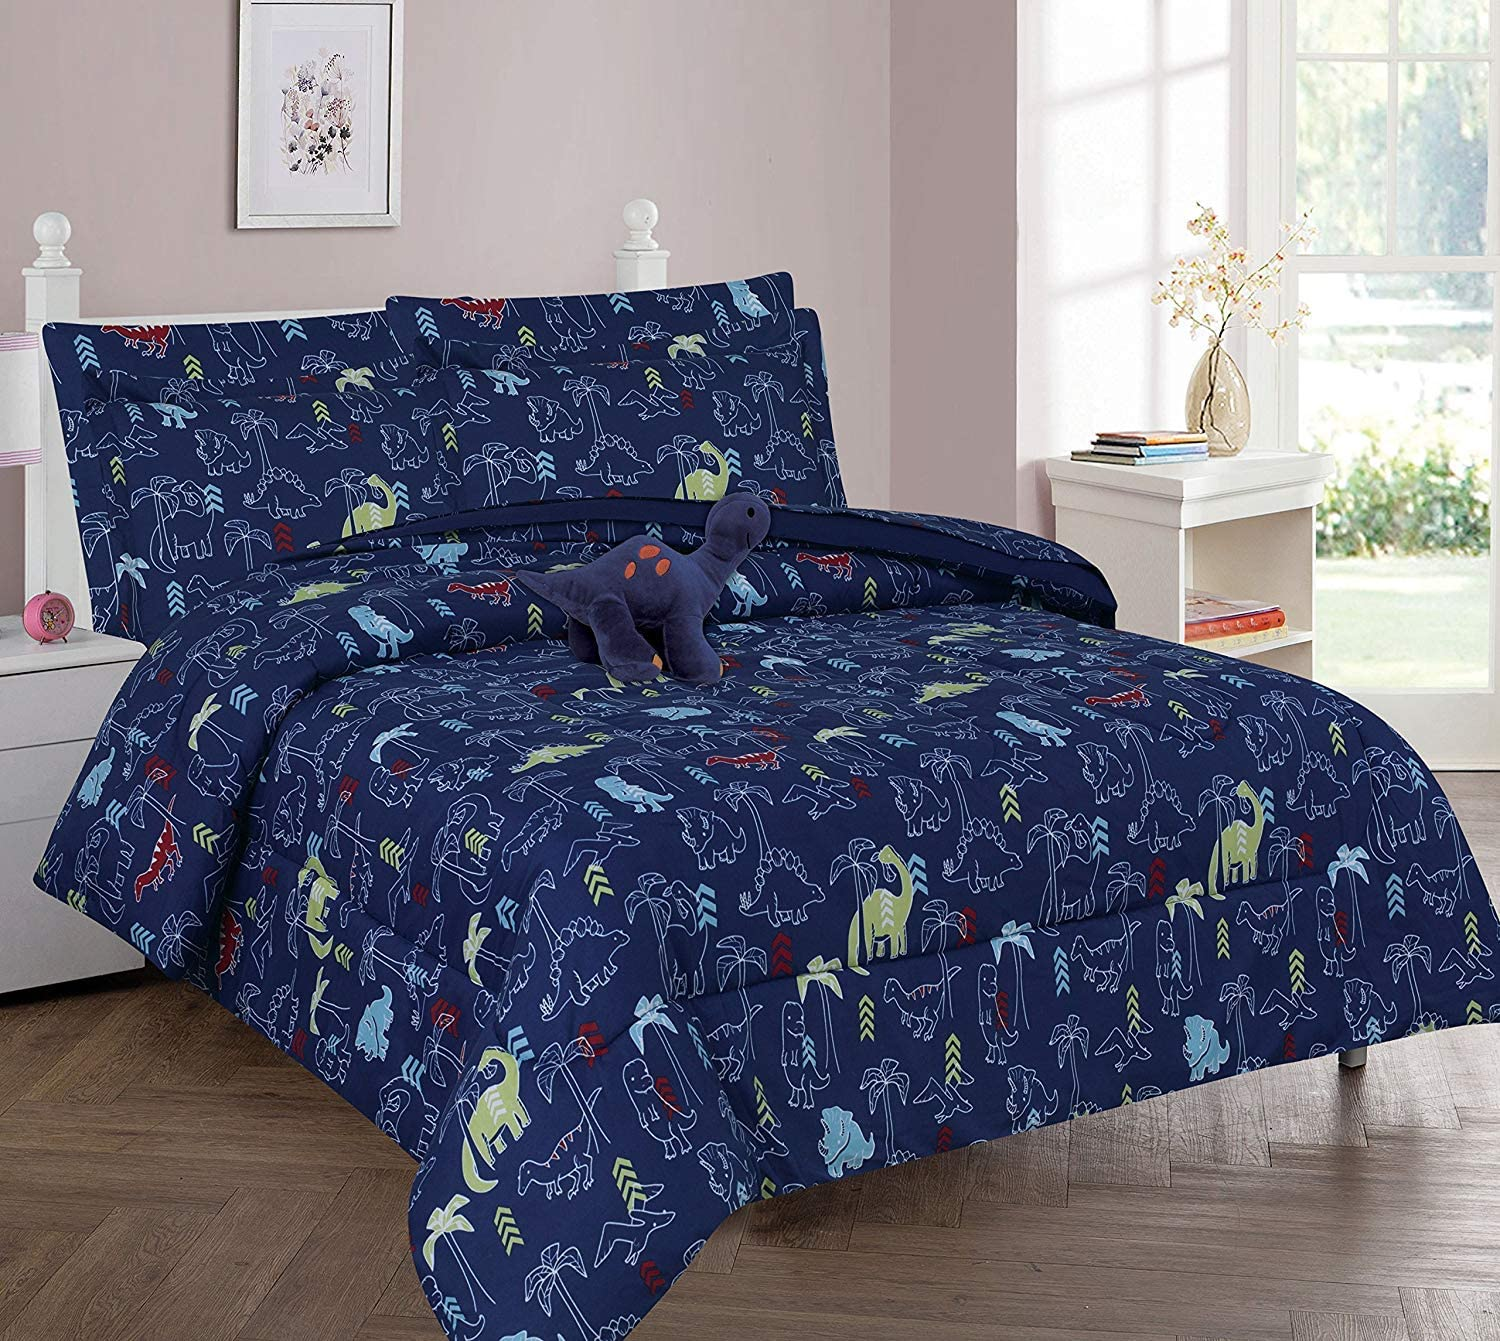 DiamondHome Boys Bedroom Decor Navy Design trend rank Inventory cleanup selling sale Full Comfor Dinosaur